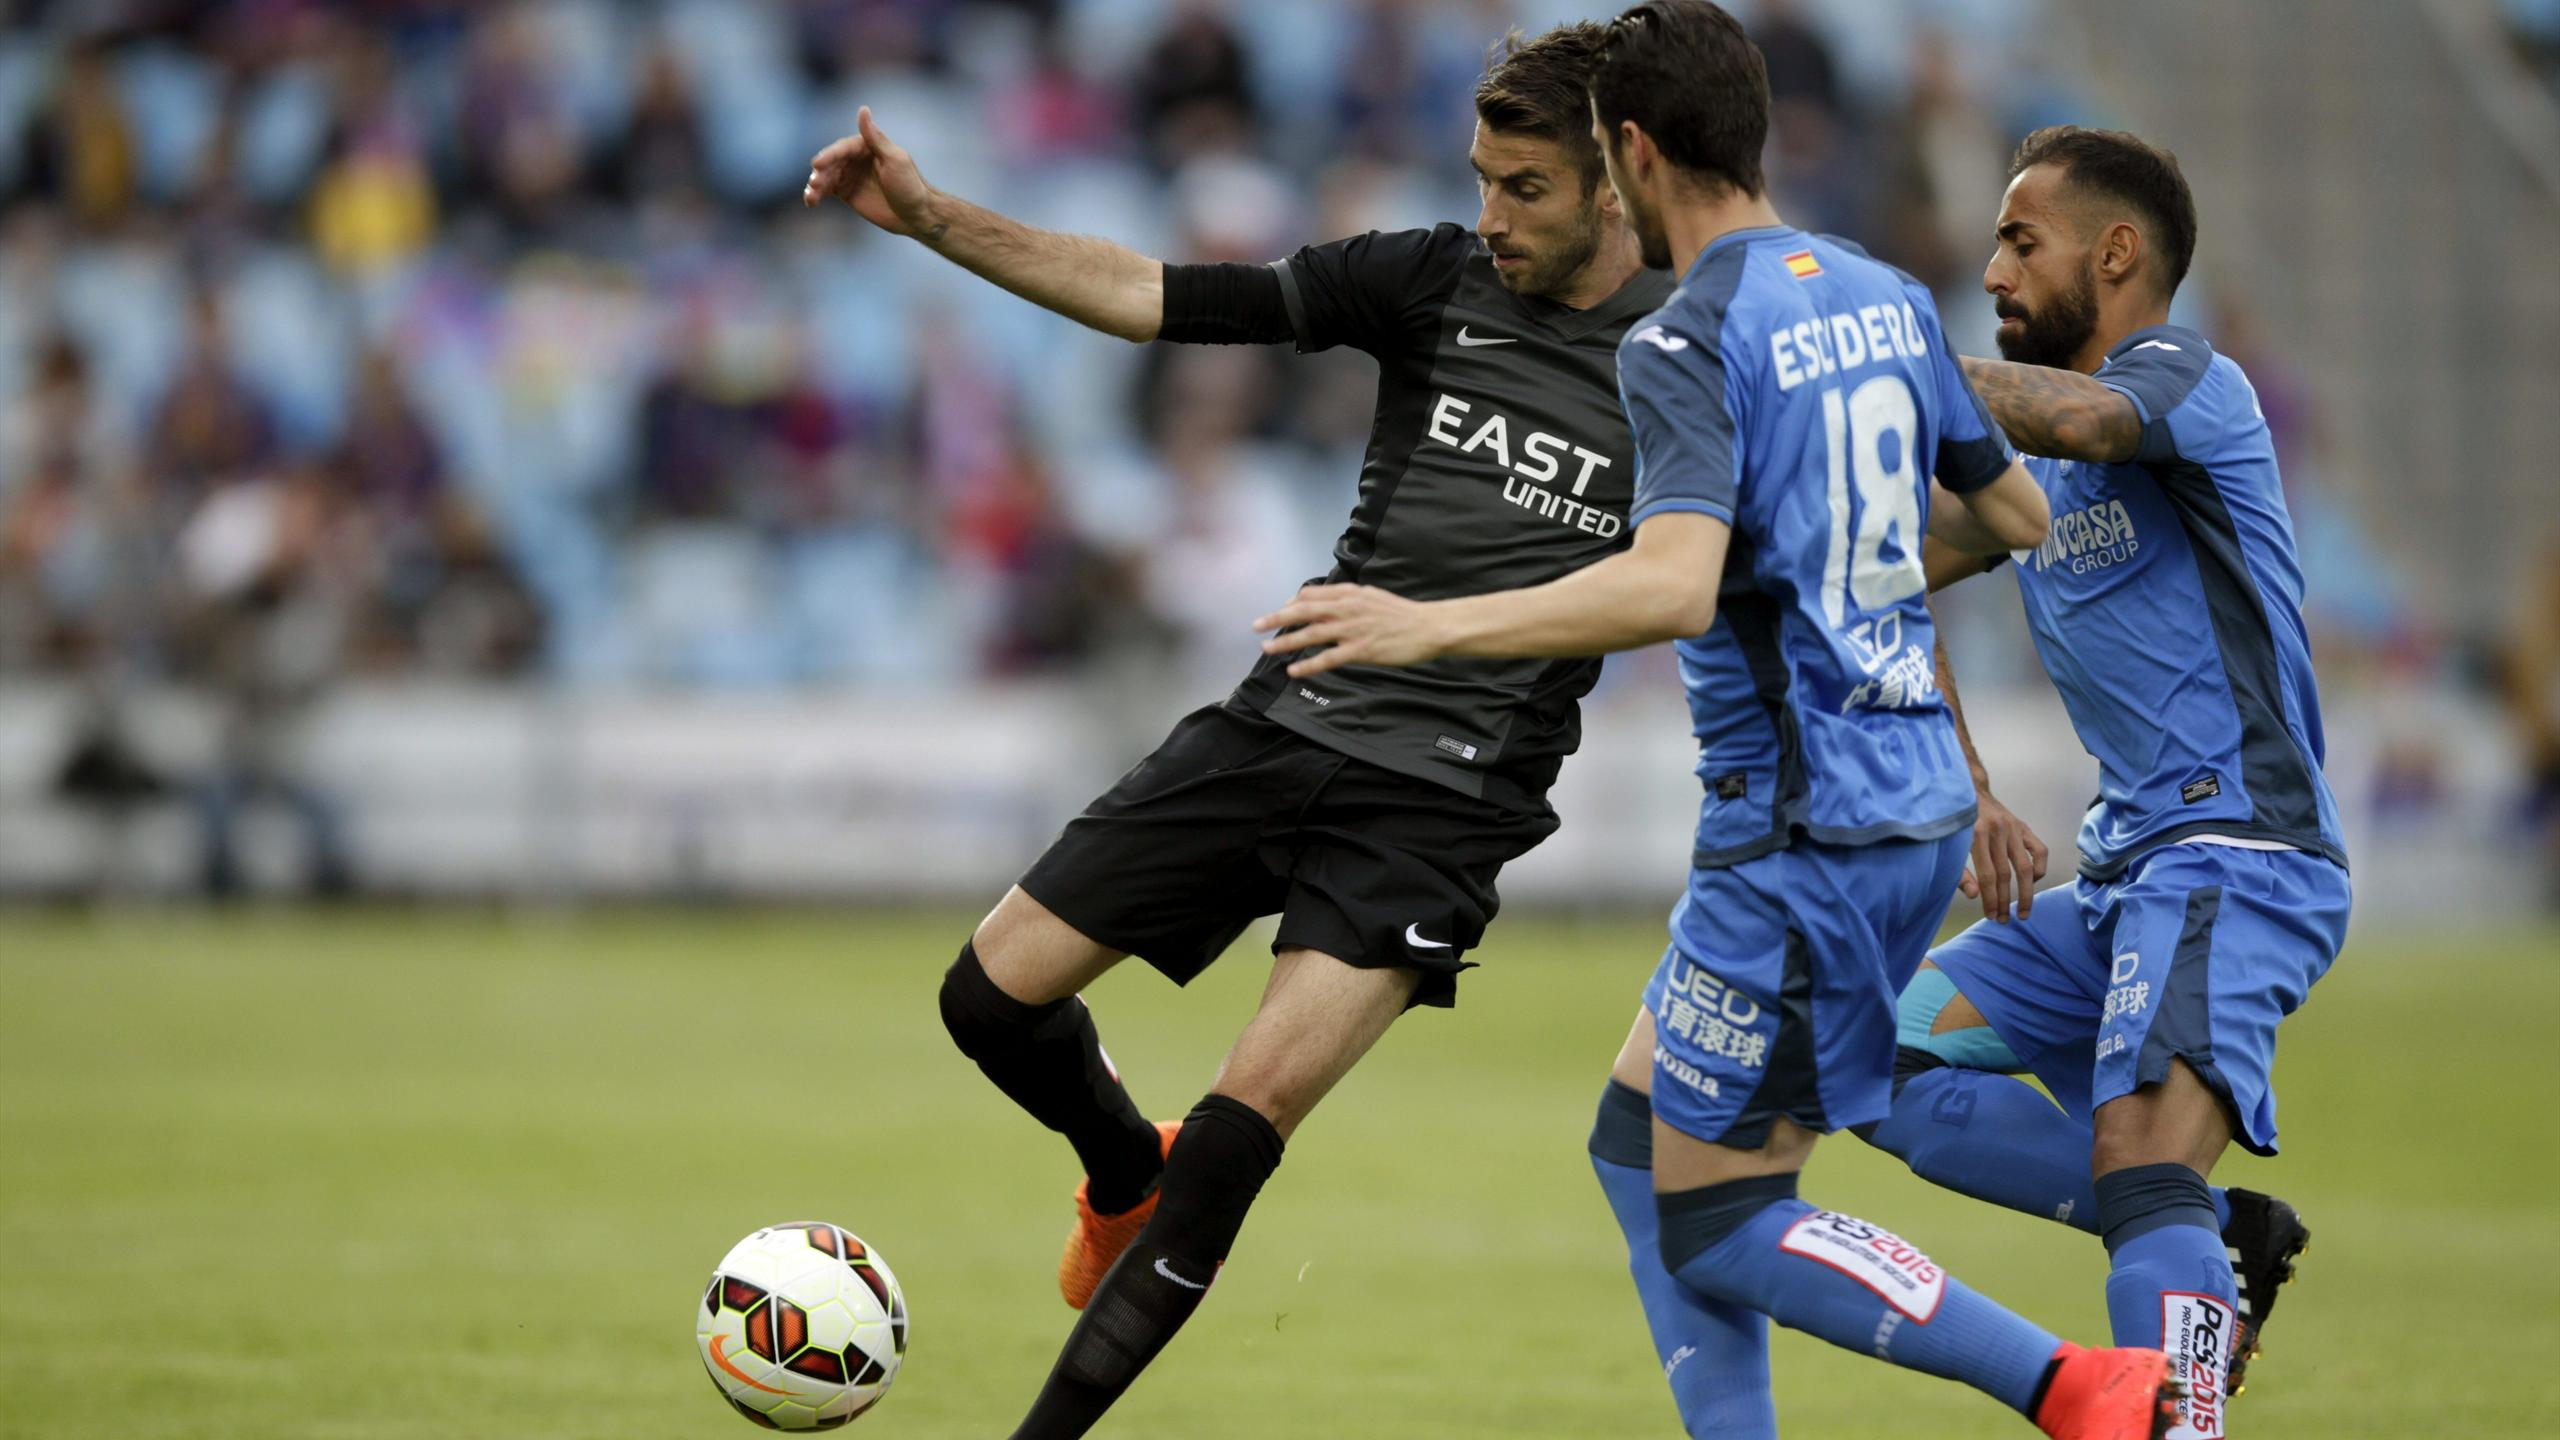 Video: Getafe vs Levante